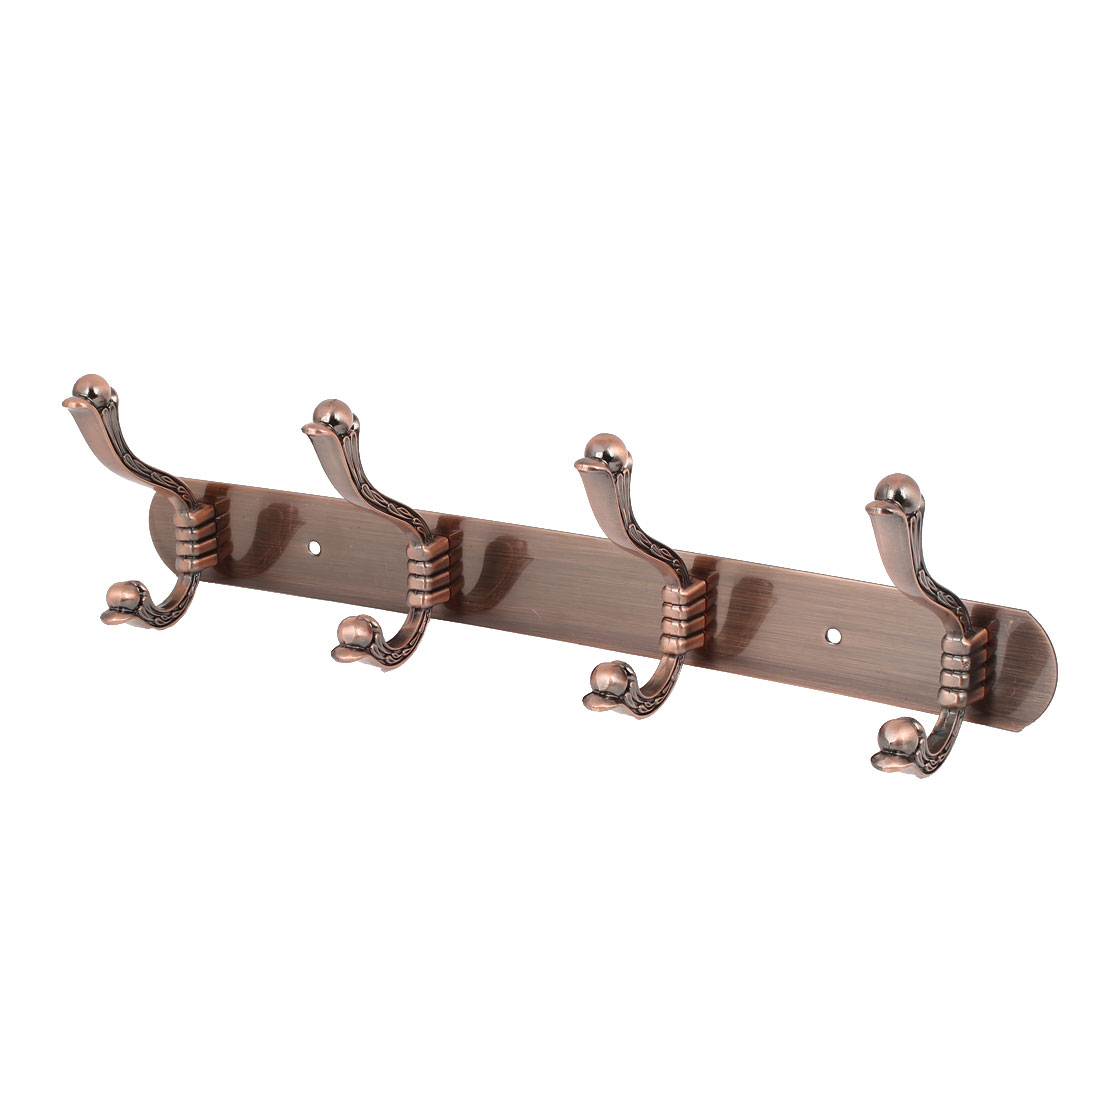 Bedroom Clothes Hanging Metal Rail Bar 4 Double Hook Wall Hanger Copper Tone 350x40x2mm